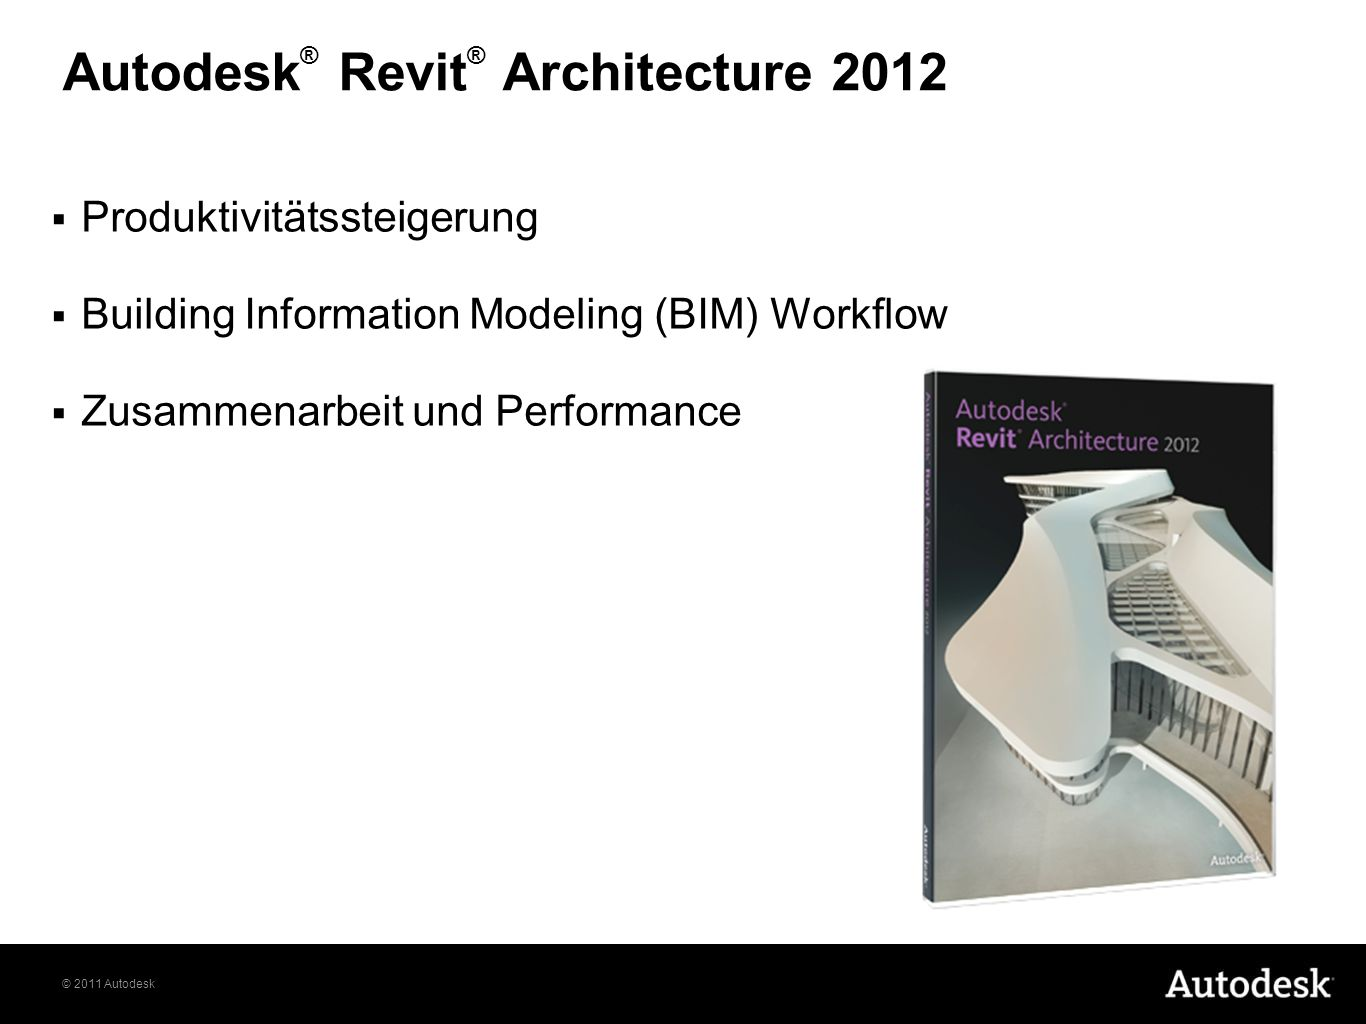 Autodesk® Revit® Architecture 2012